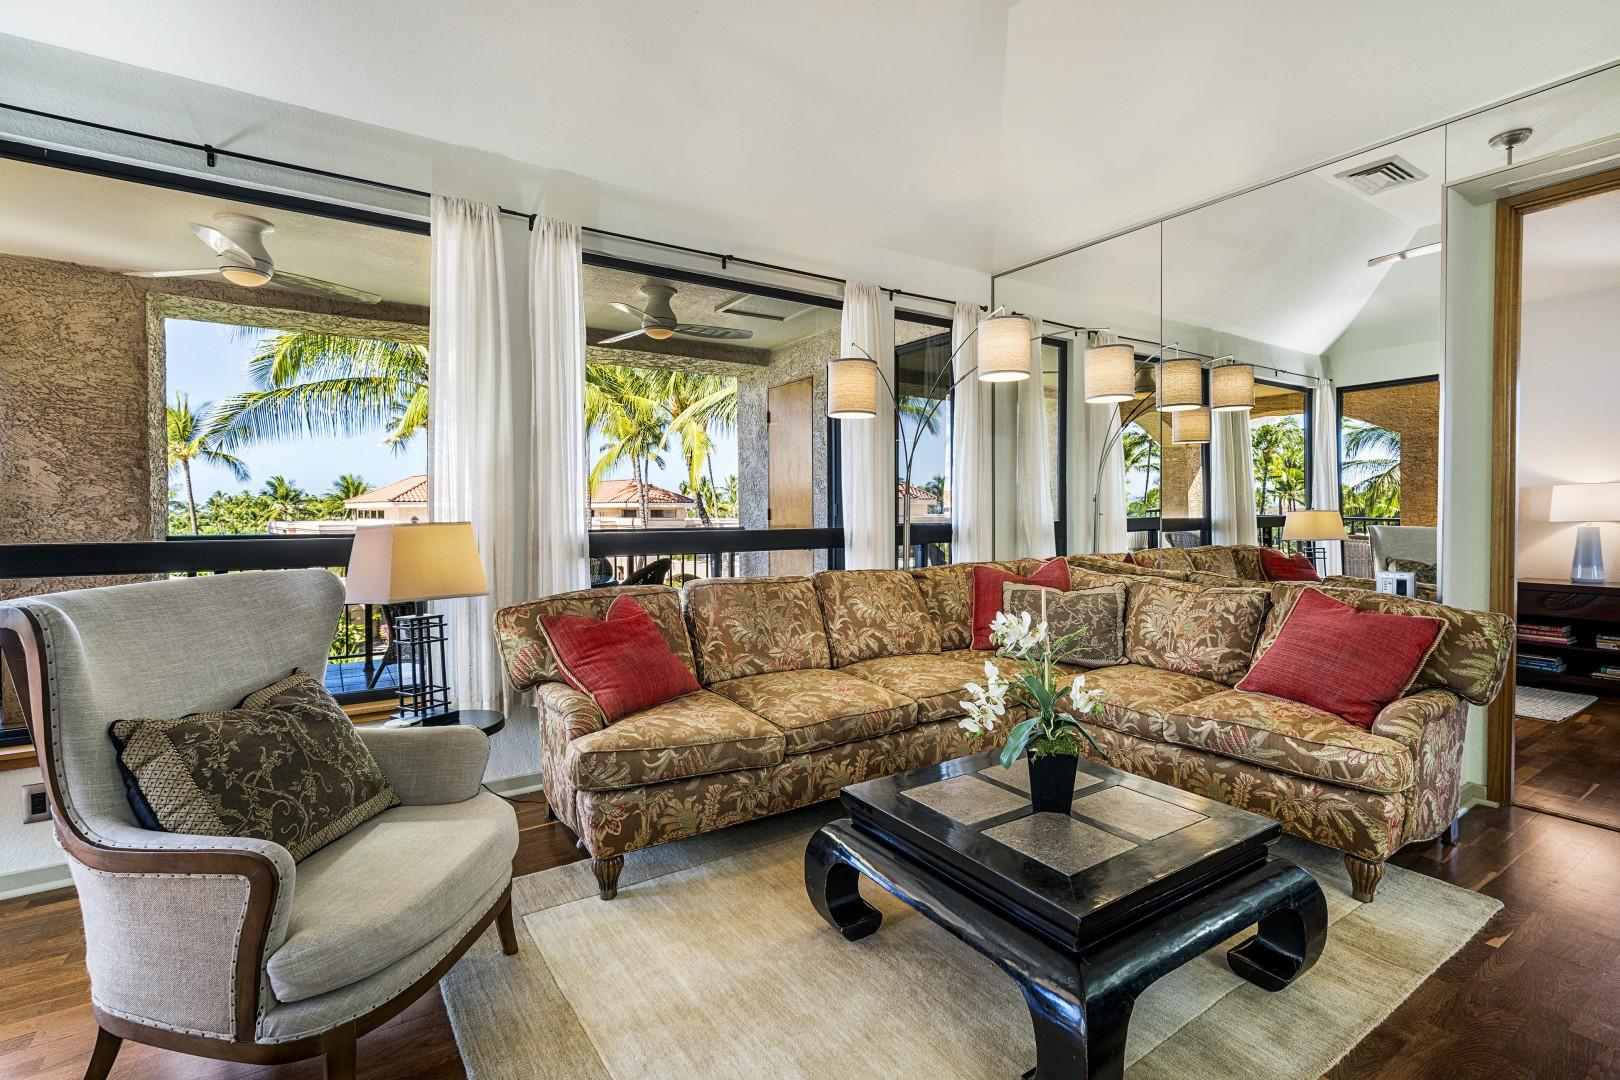 Ample seating with space to entertain or simply watch TV